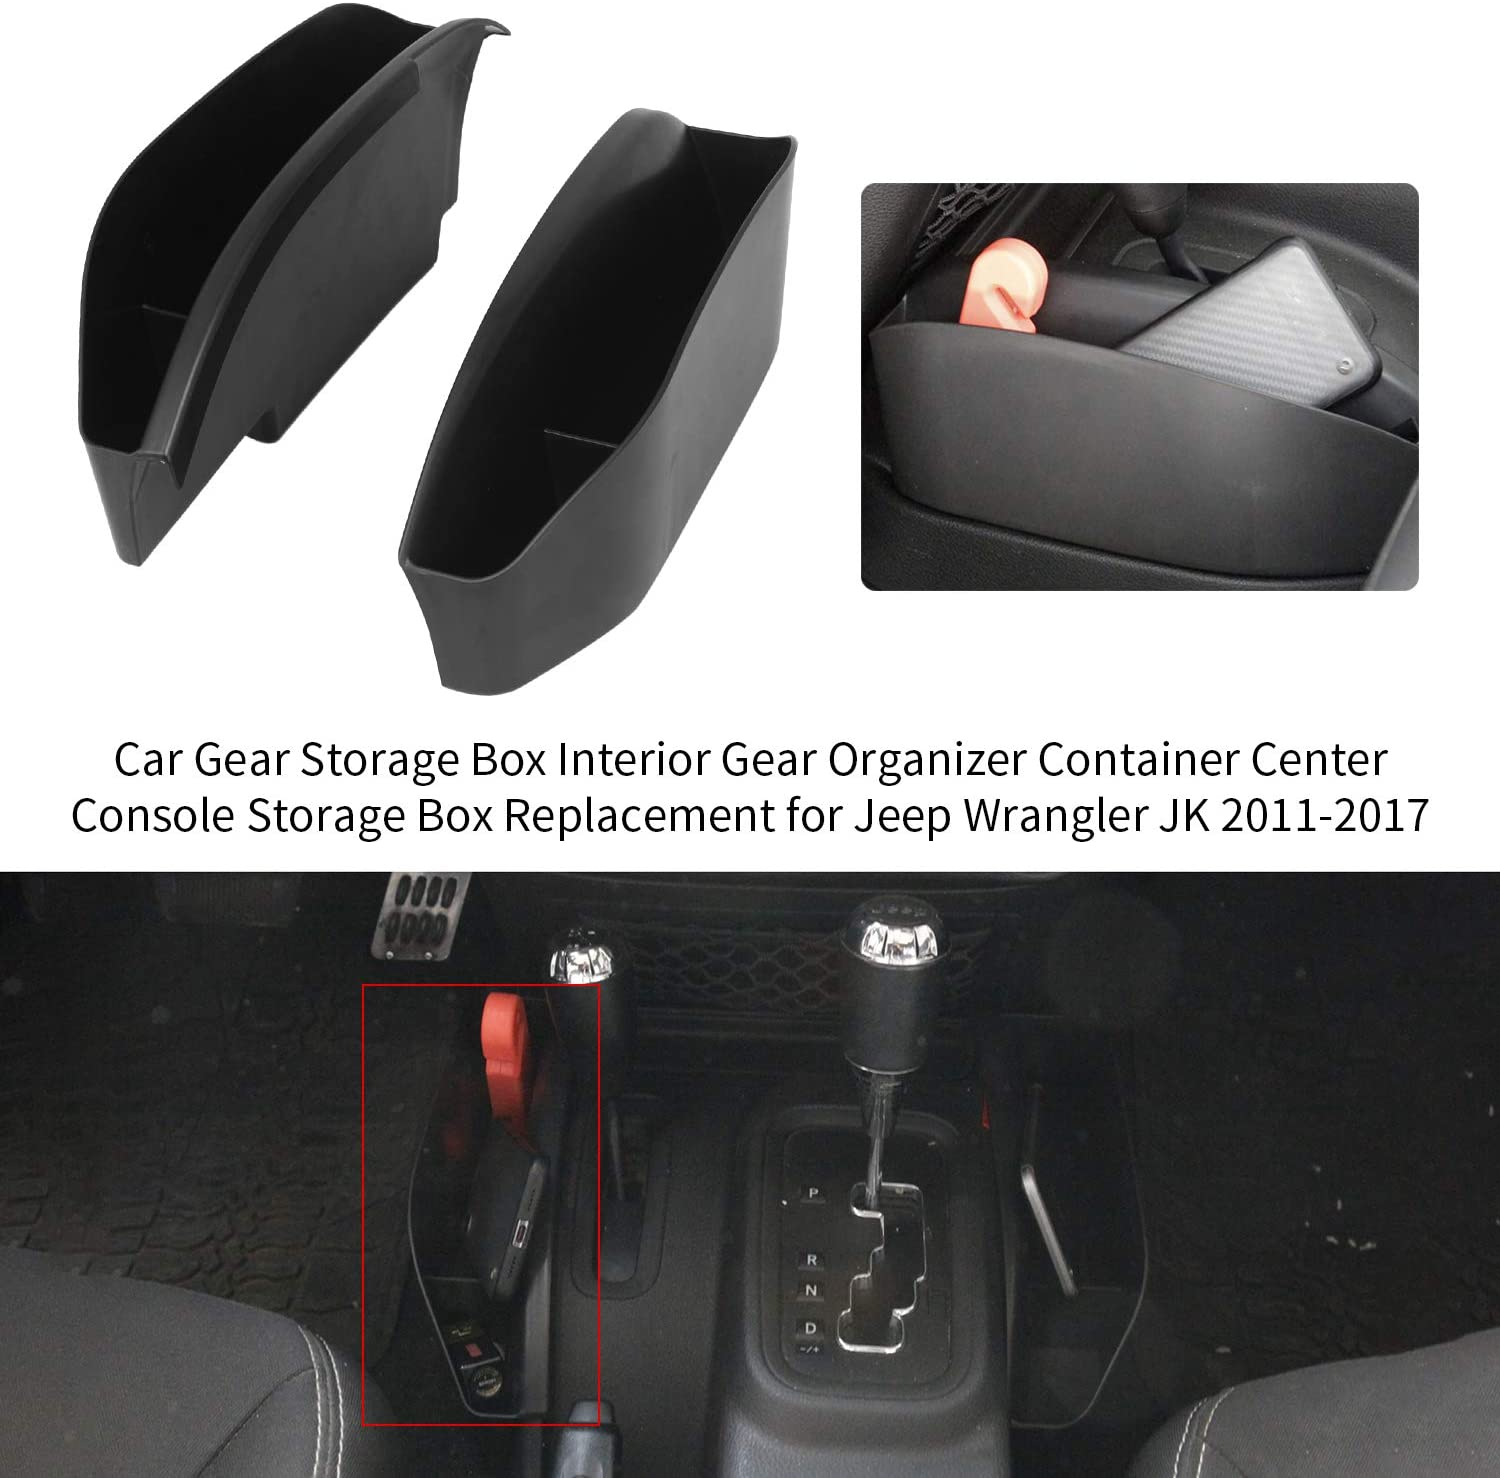 KKmoon Car Gear Storage Box Interior Gear Organizer Container Center Console Storage Box Replacement for Jeep Wrangler JK 2011-2017